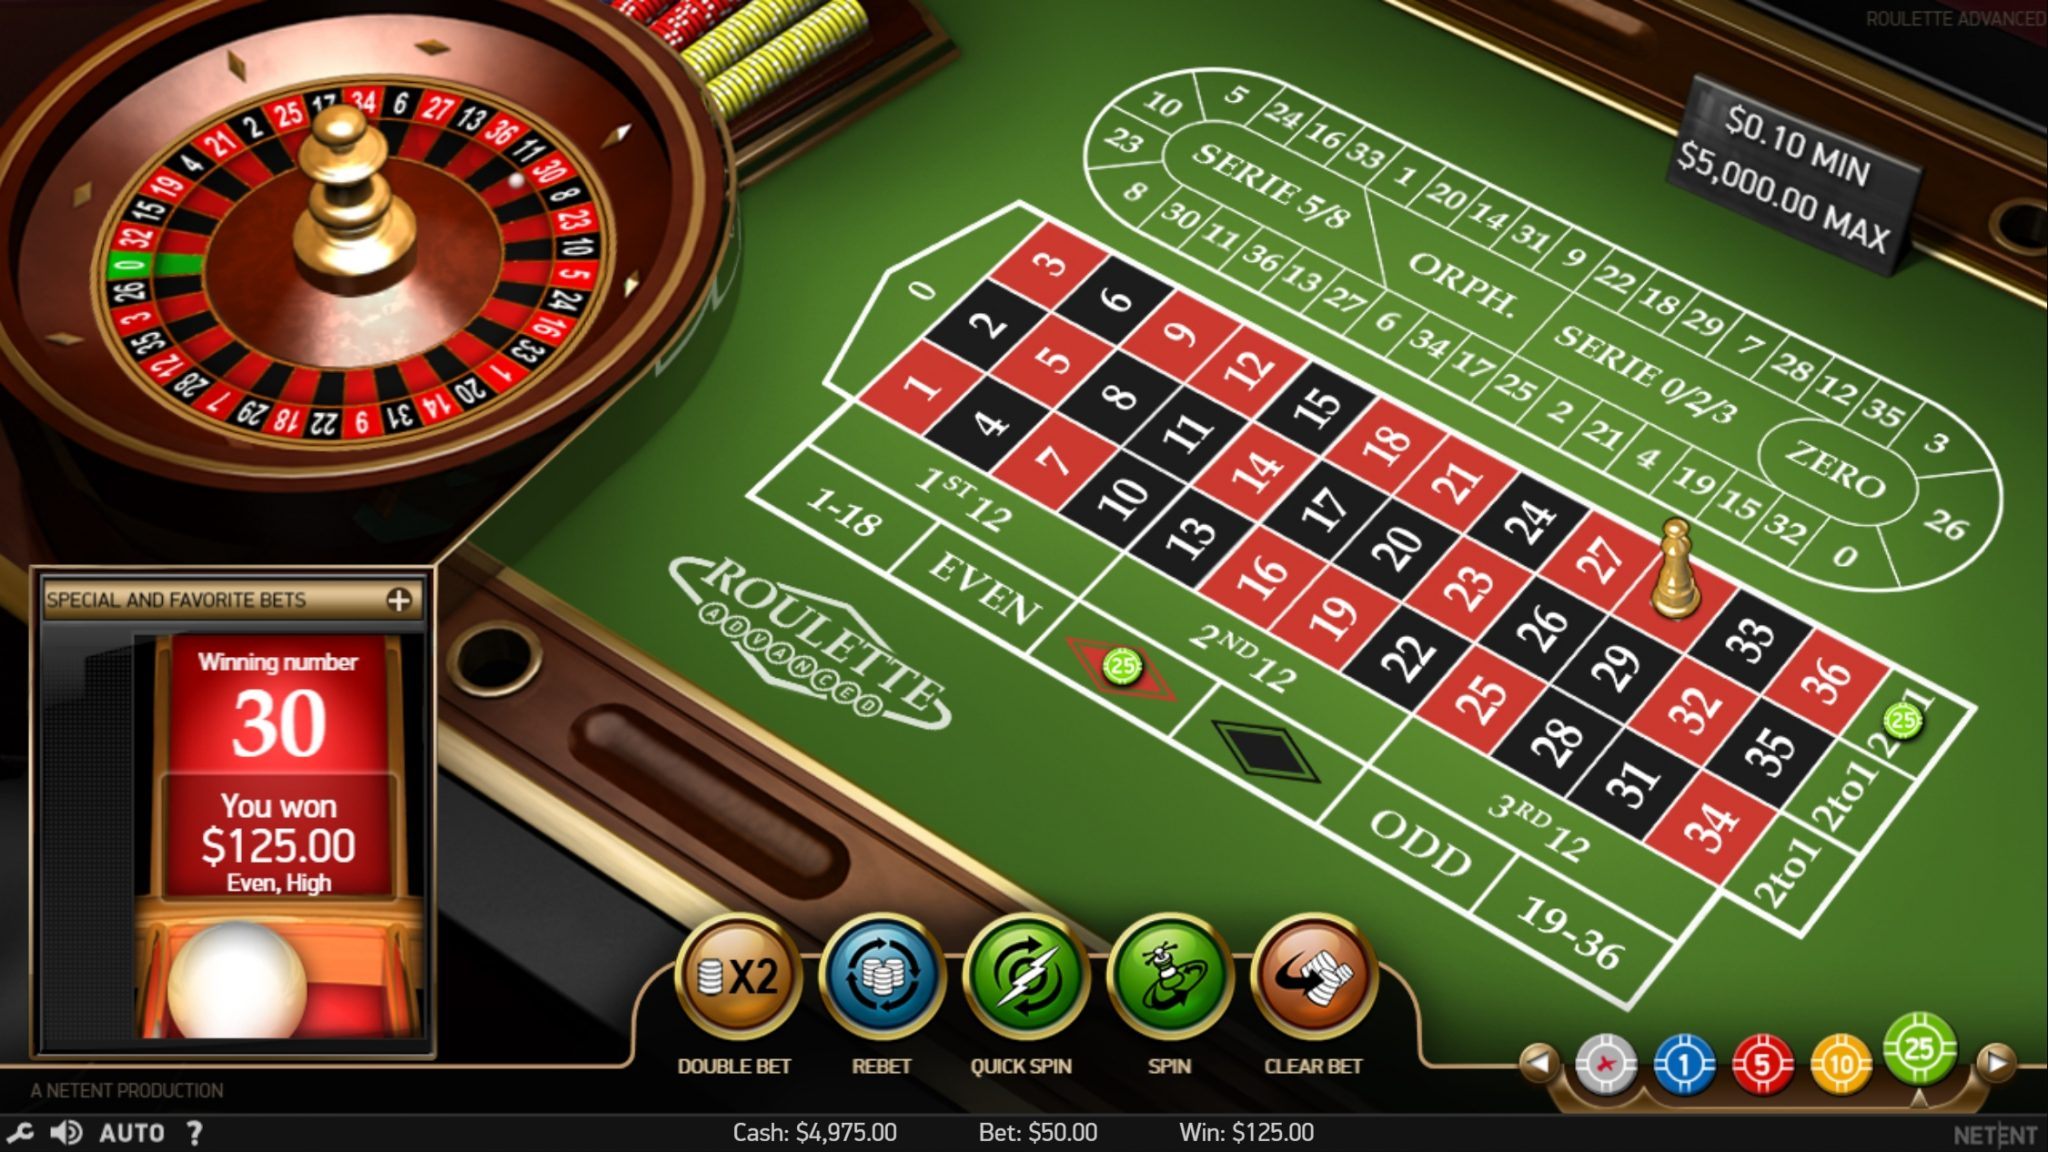 Roulette Tips For Winning at Roulette